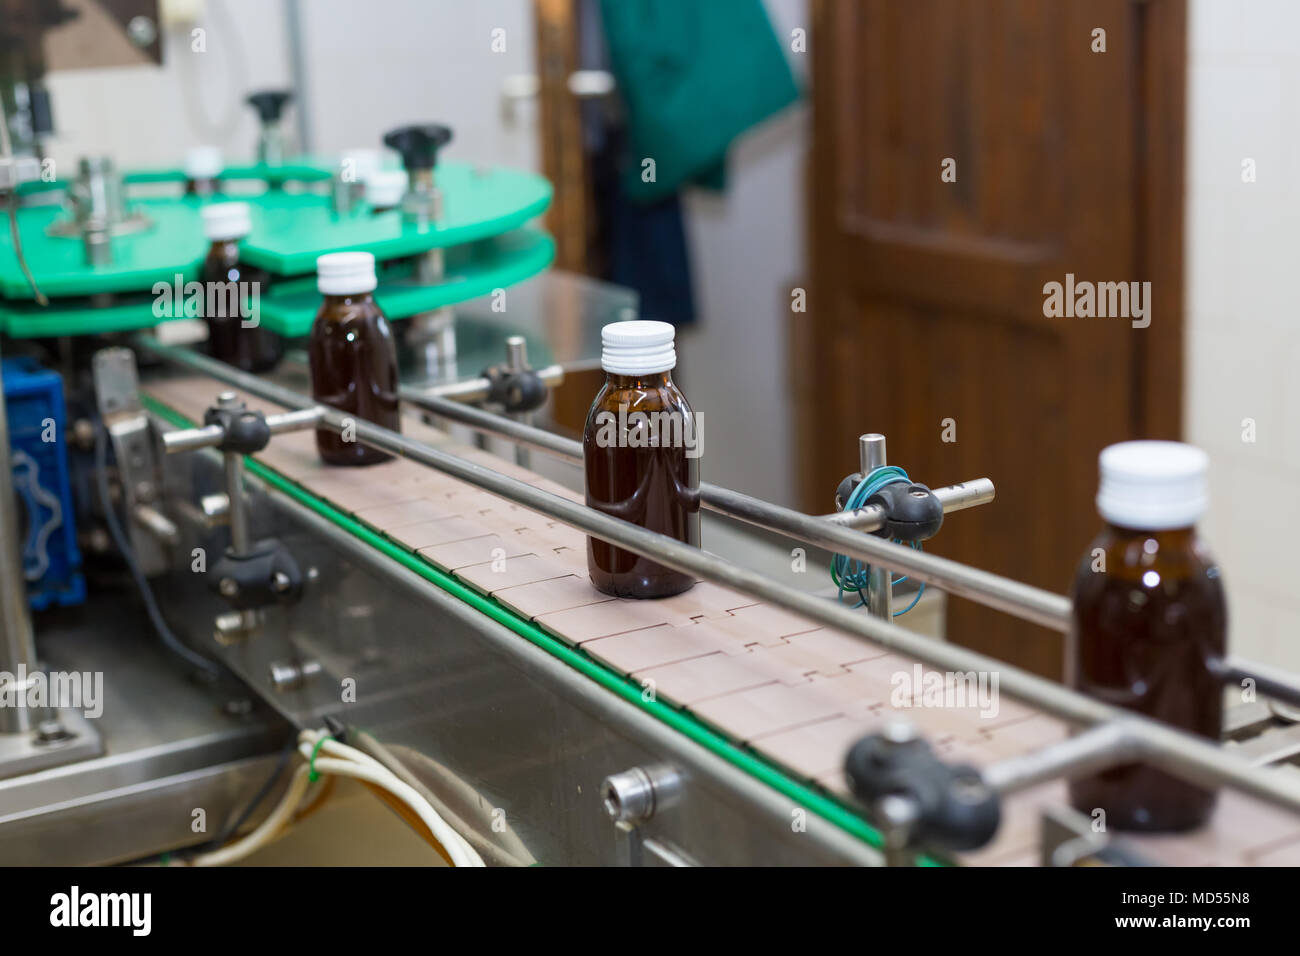 Pharmaceutical brown glass bottle production line. - Stock Image